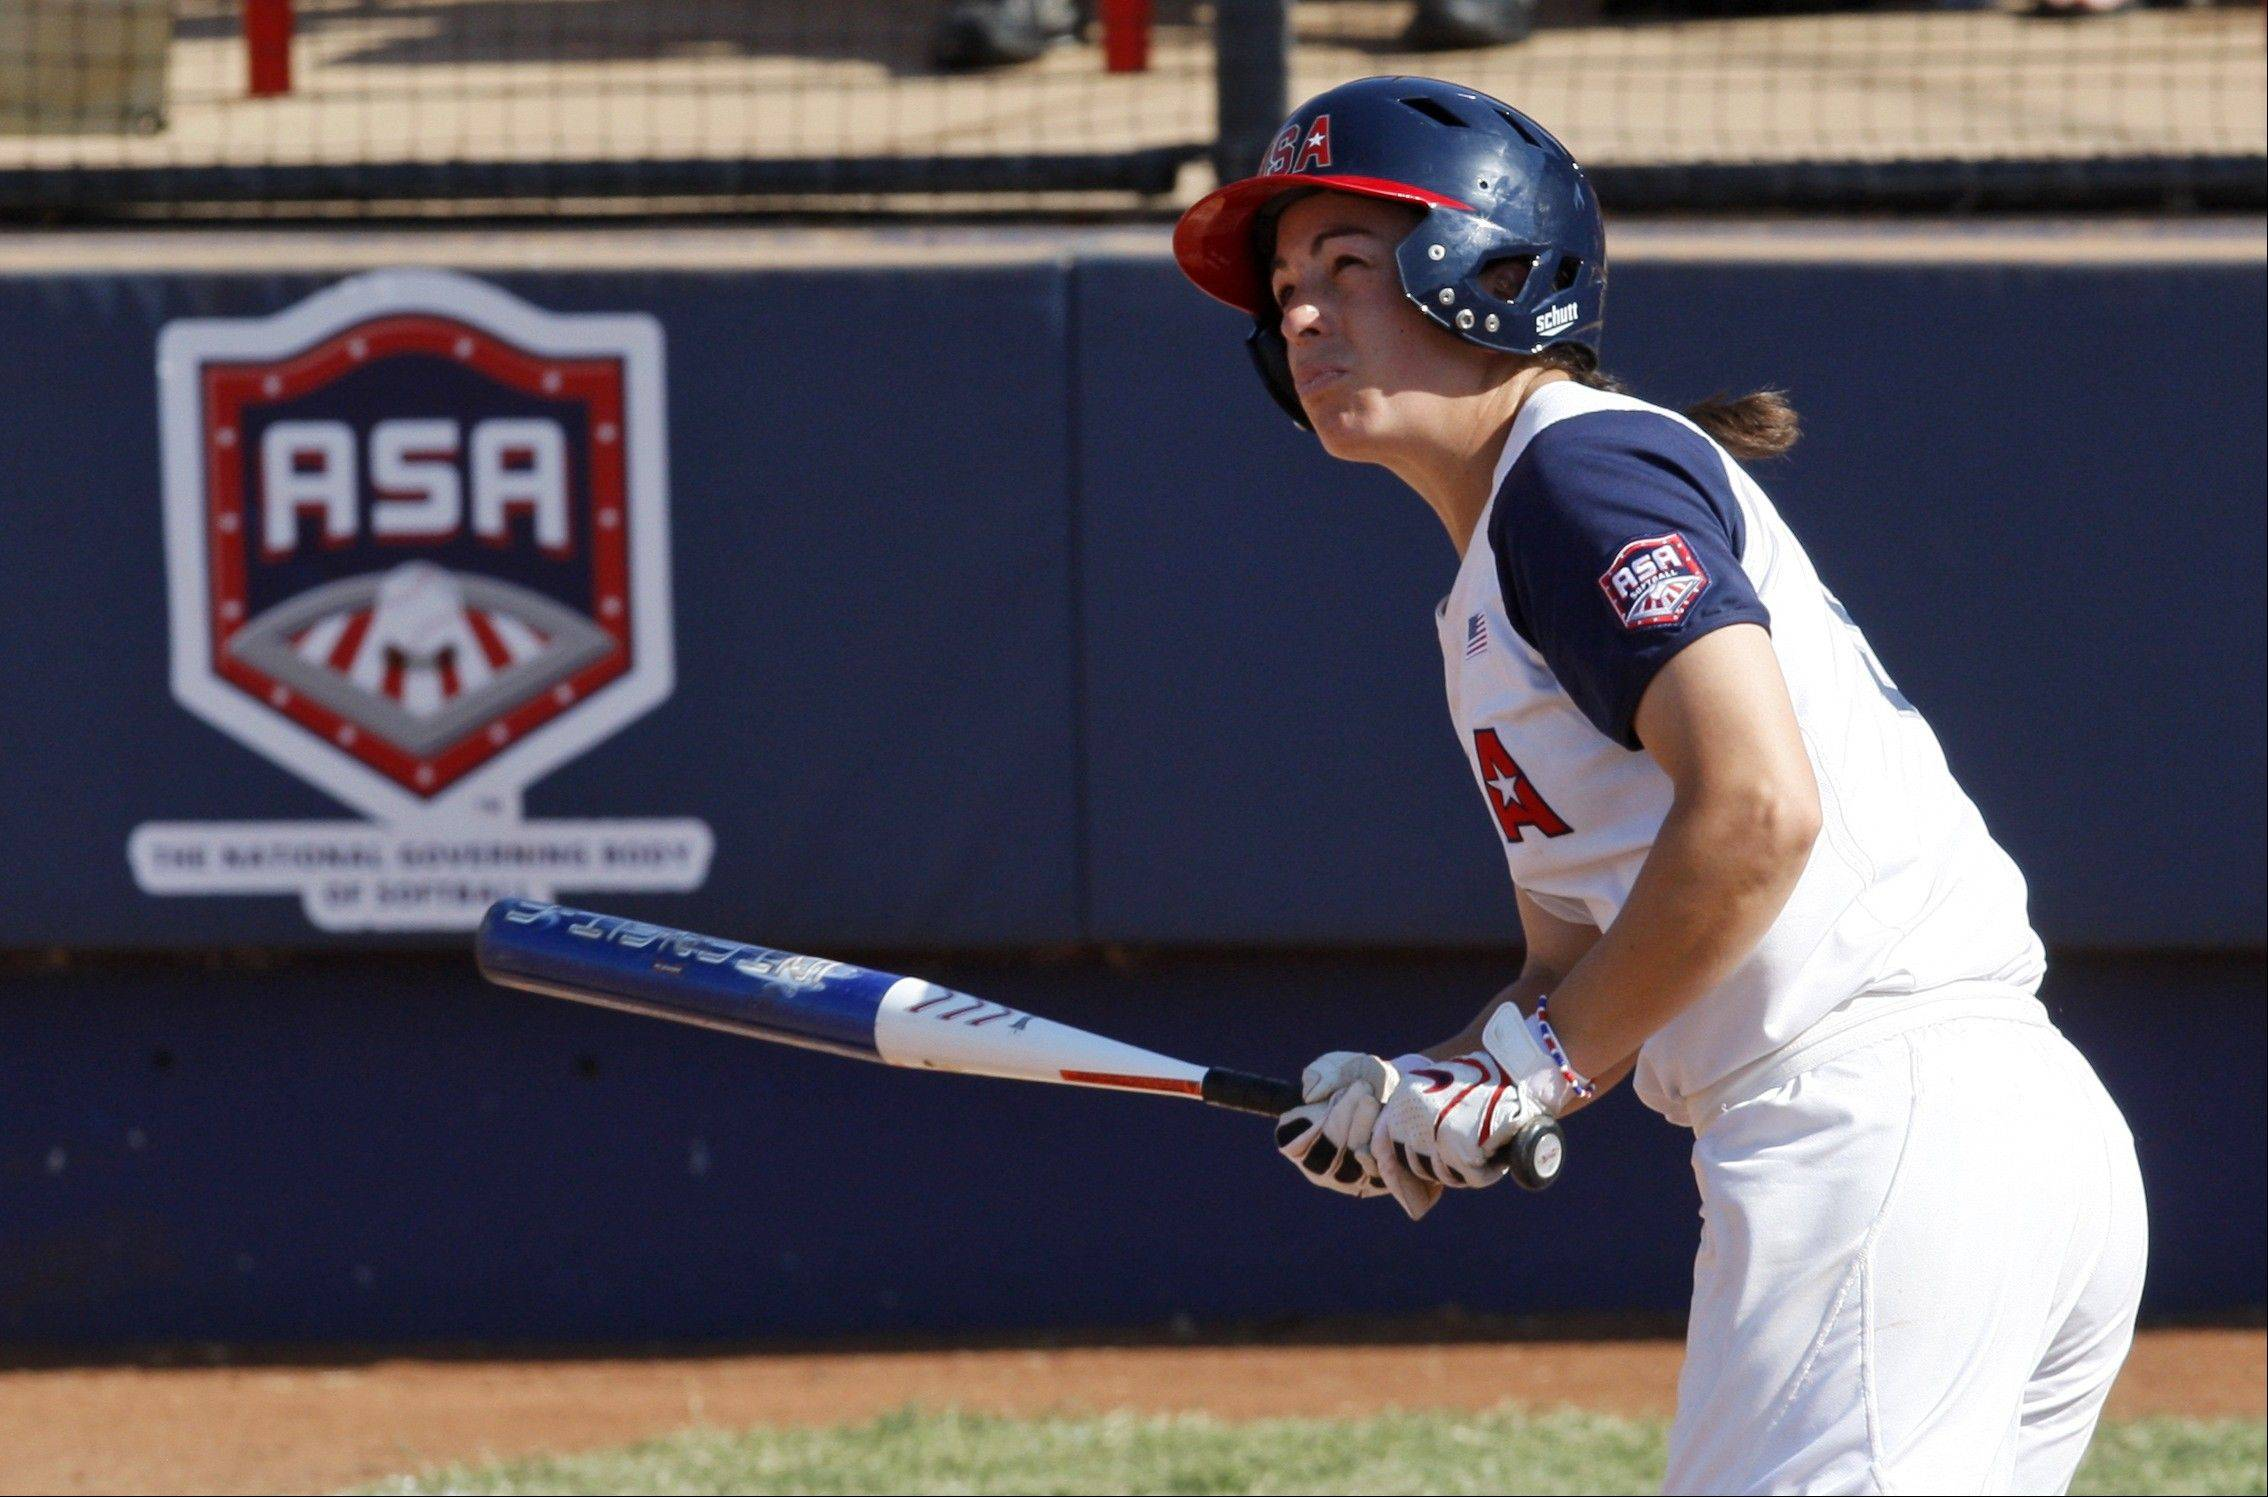 United States' Stacy May-Johnson watches her fourth-inning home run against Great Britain in a World Cup of Softball game in Oklahoma City on July 24, 2011. The United States won 10-0.